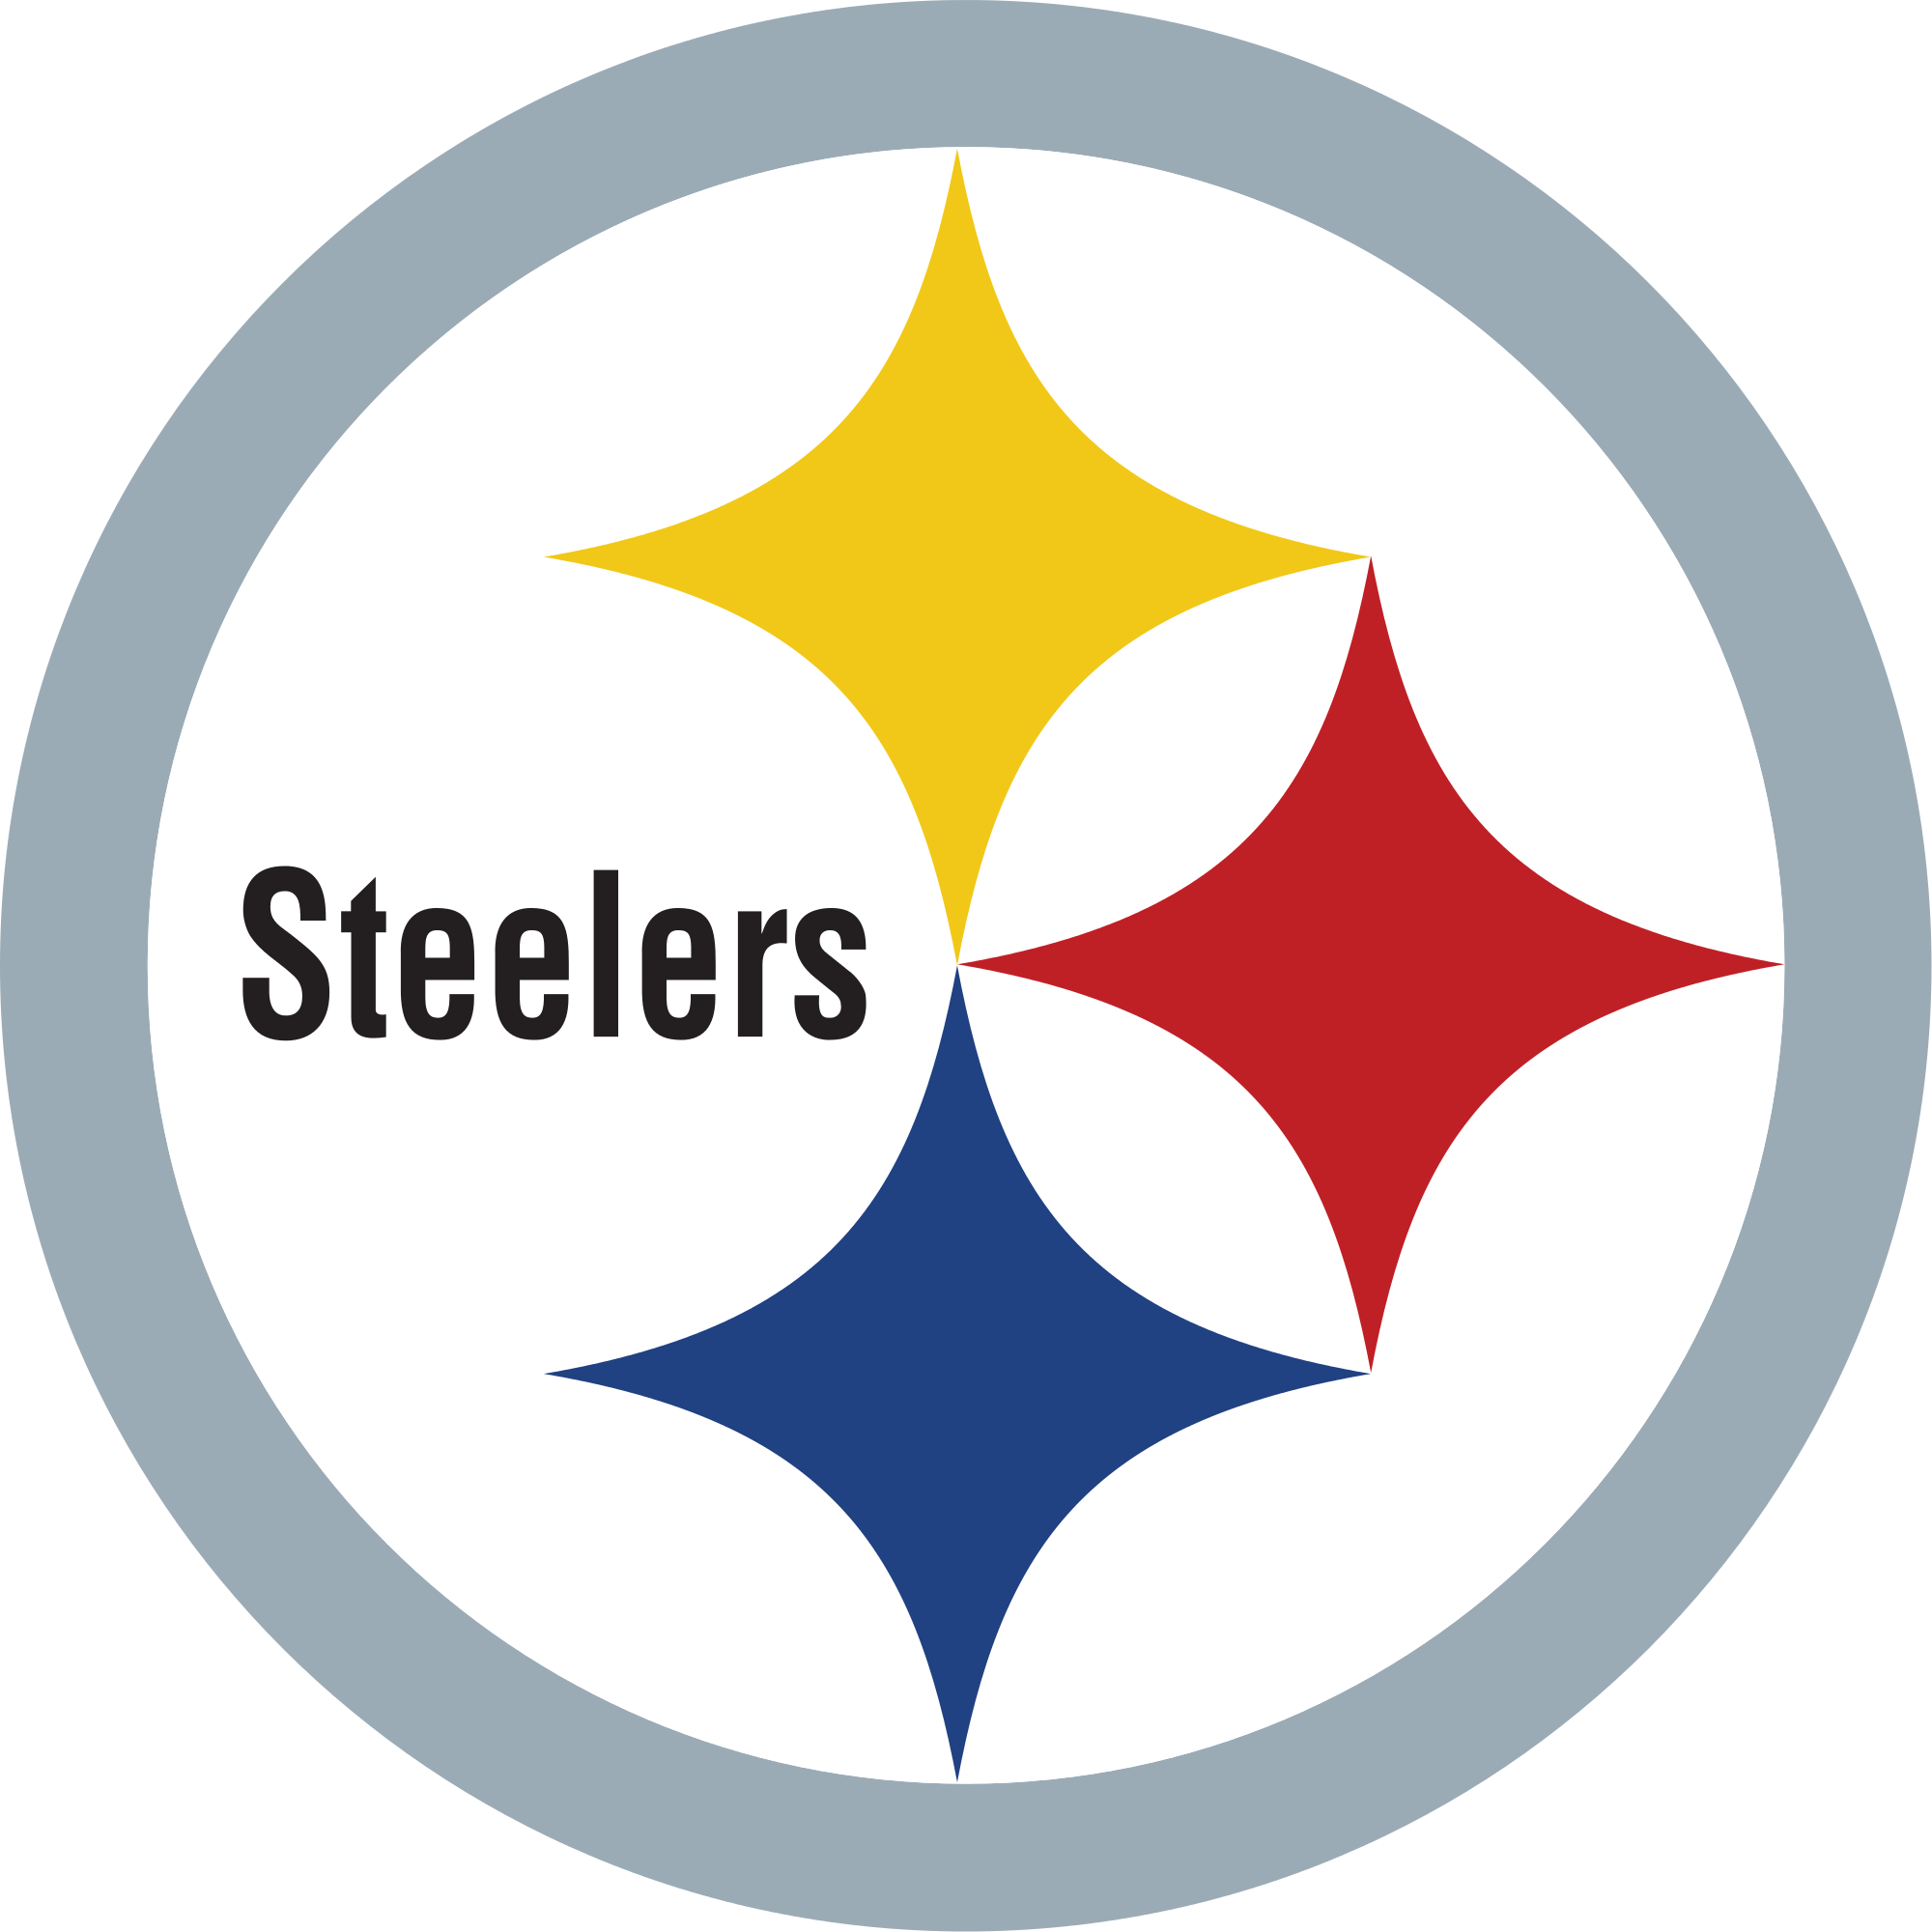 pittsburgh steelers logo http www steelers com http pinterest rh pinterest com steelers logos images steelers logos history